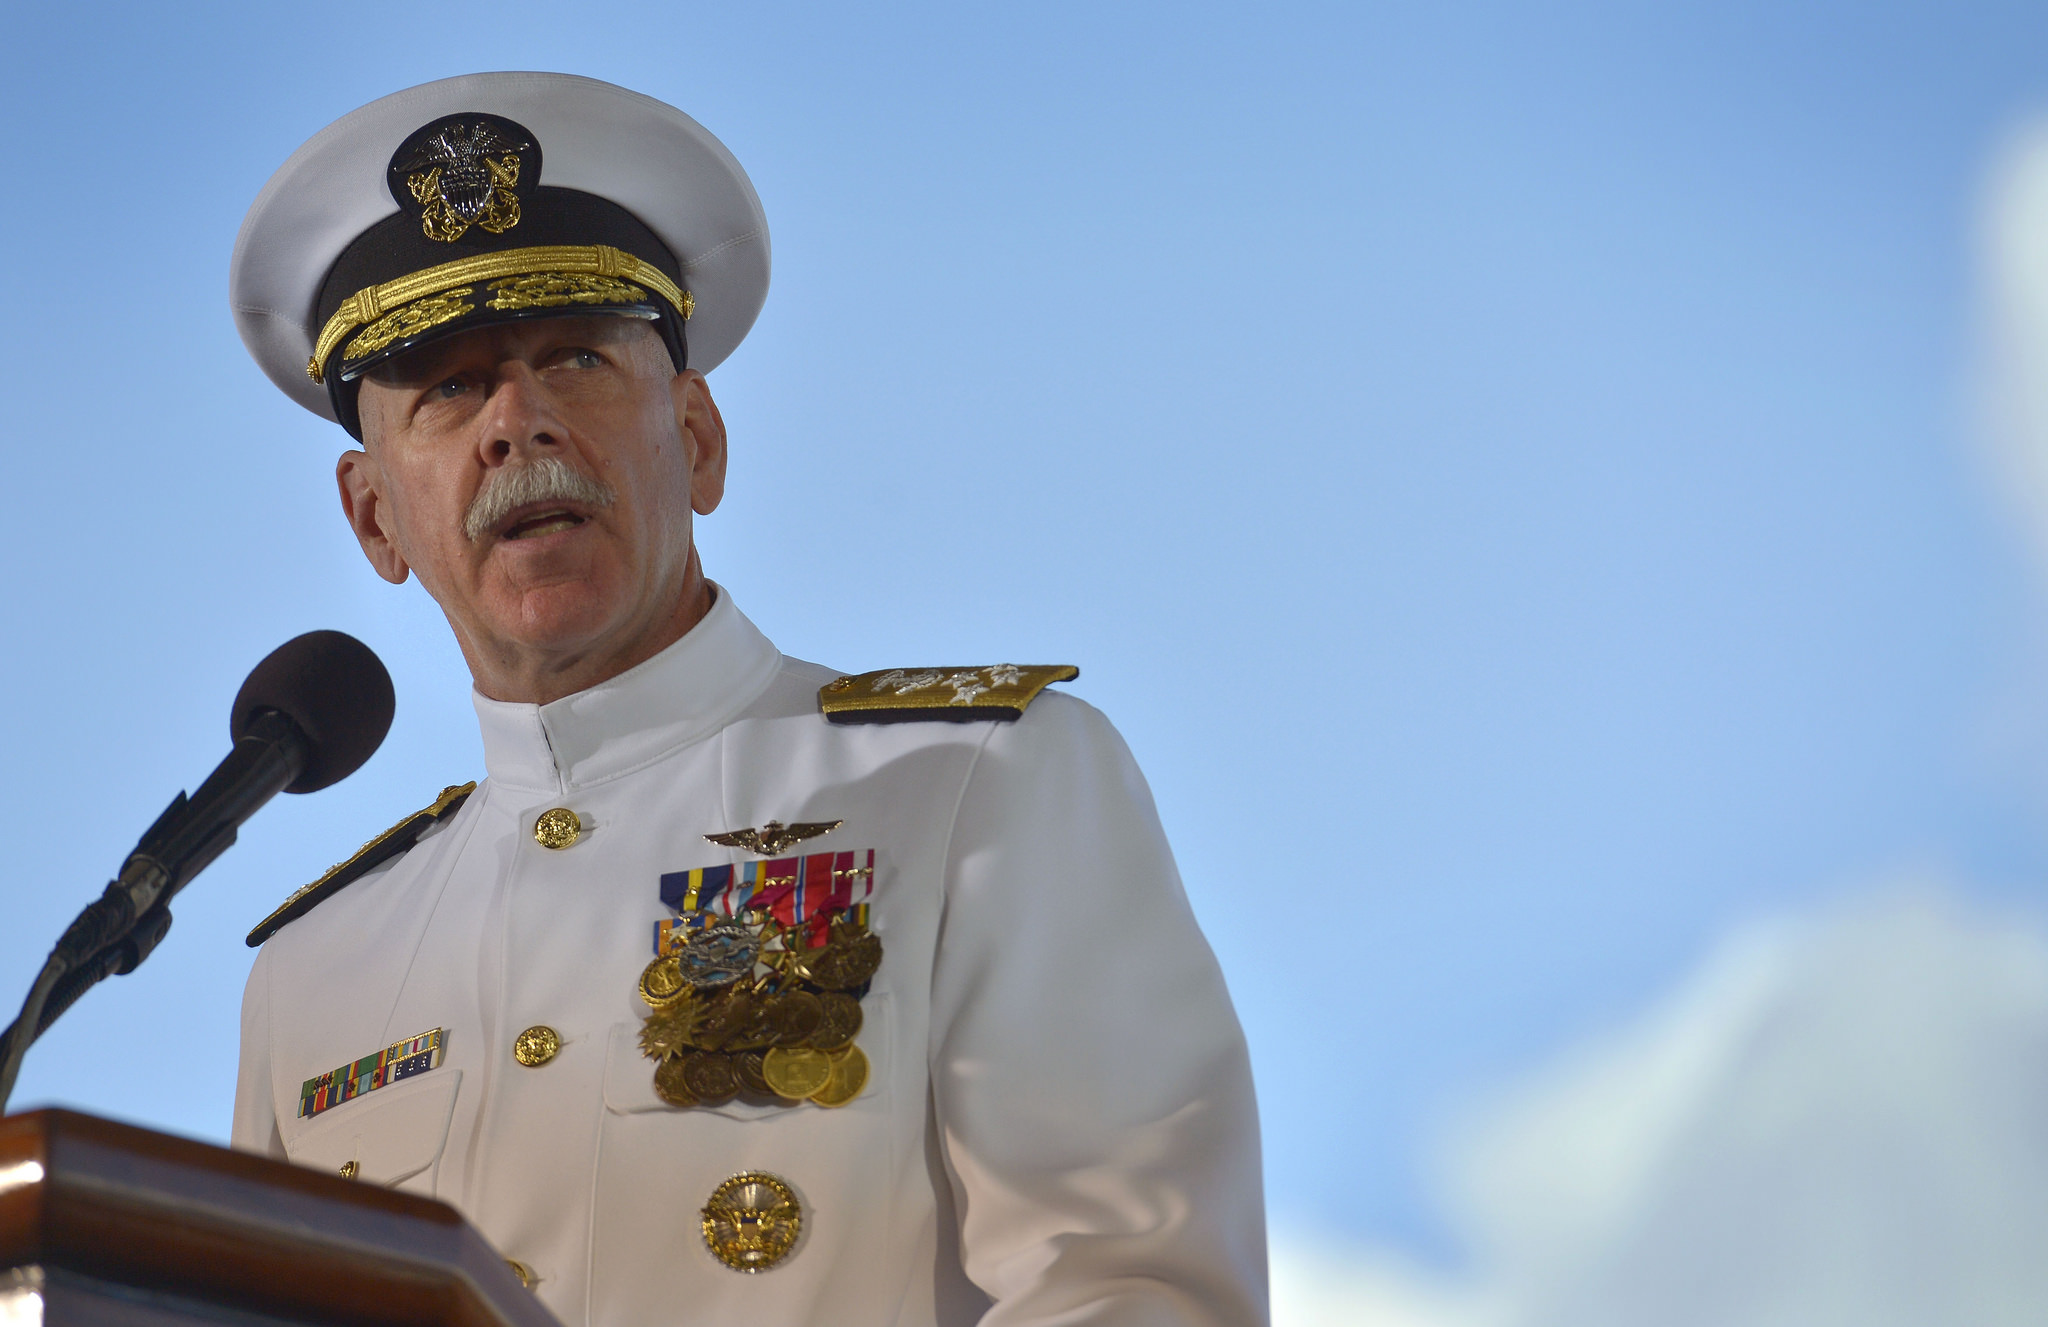 US Admiral Says He'd Nuke Beijing If Trump Told Him To